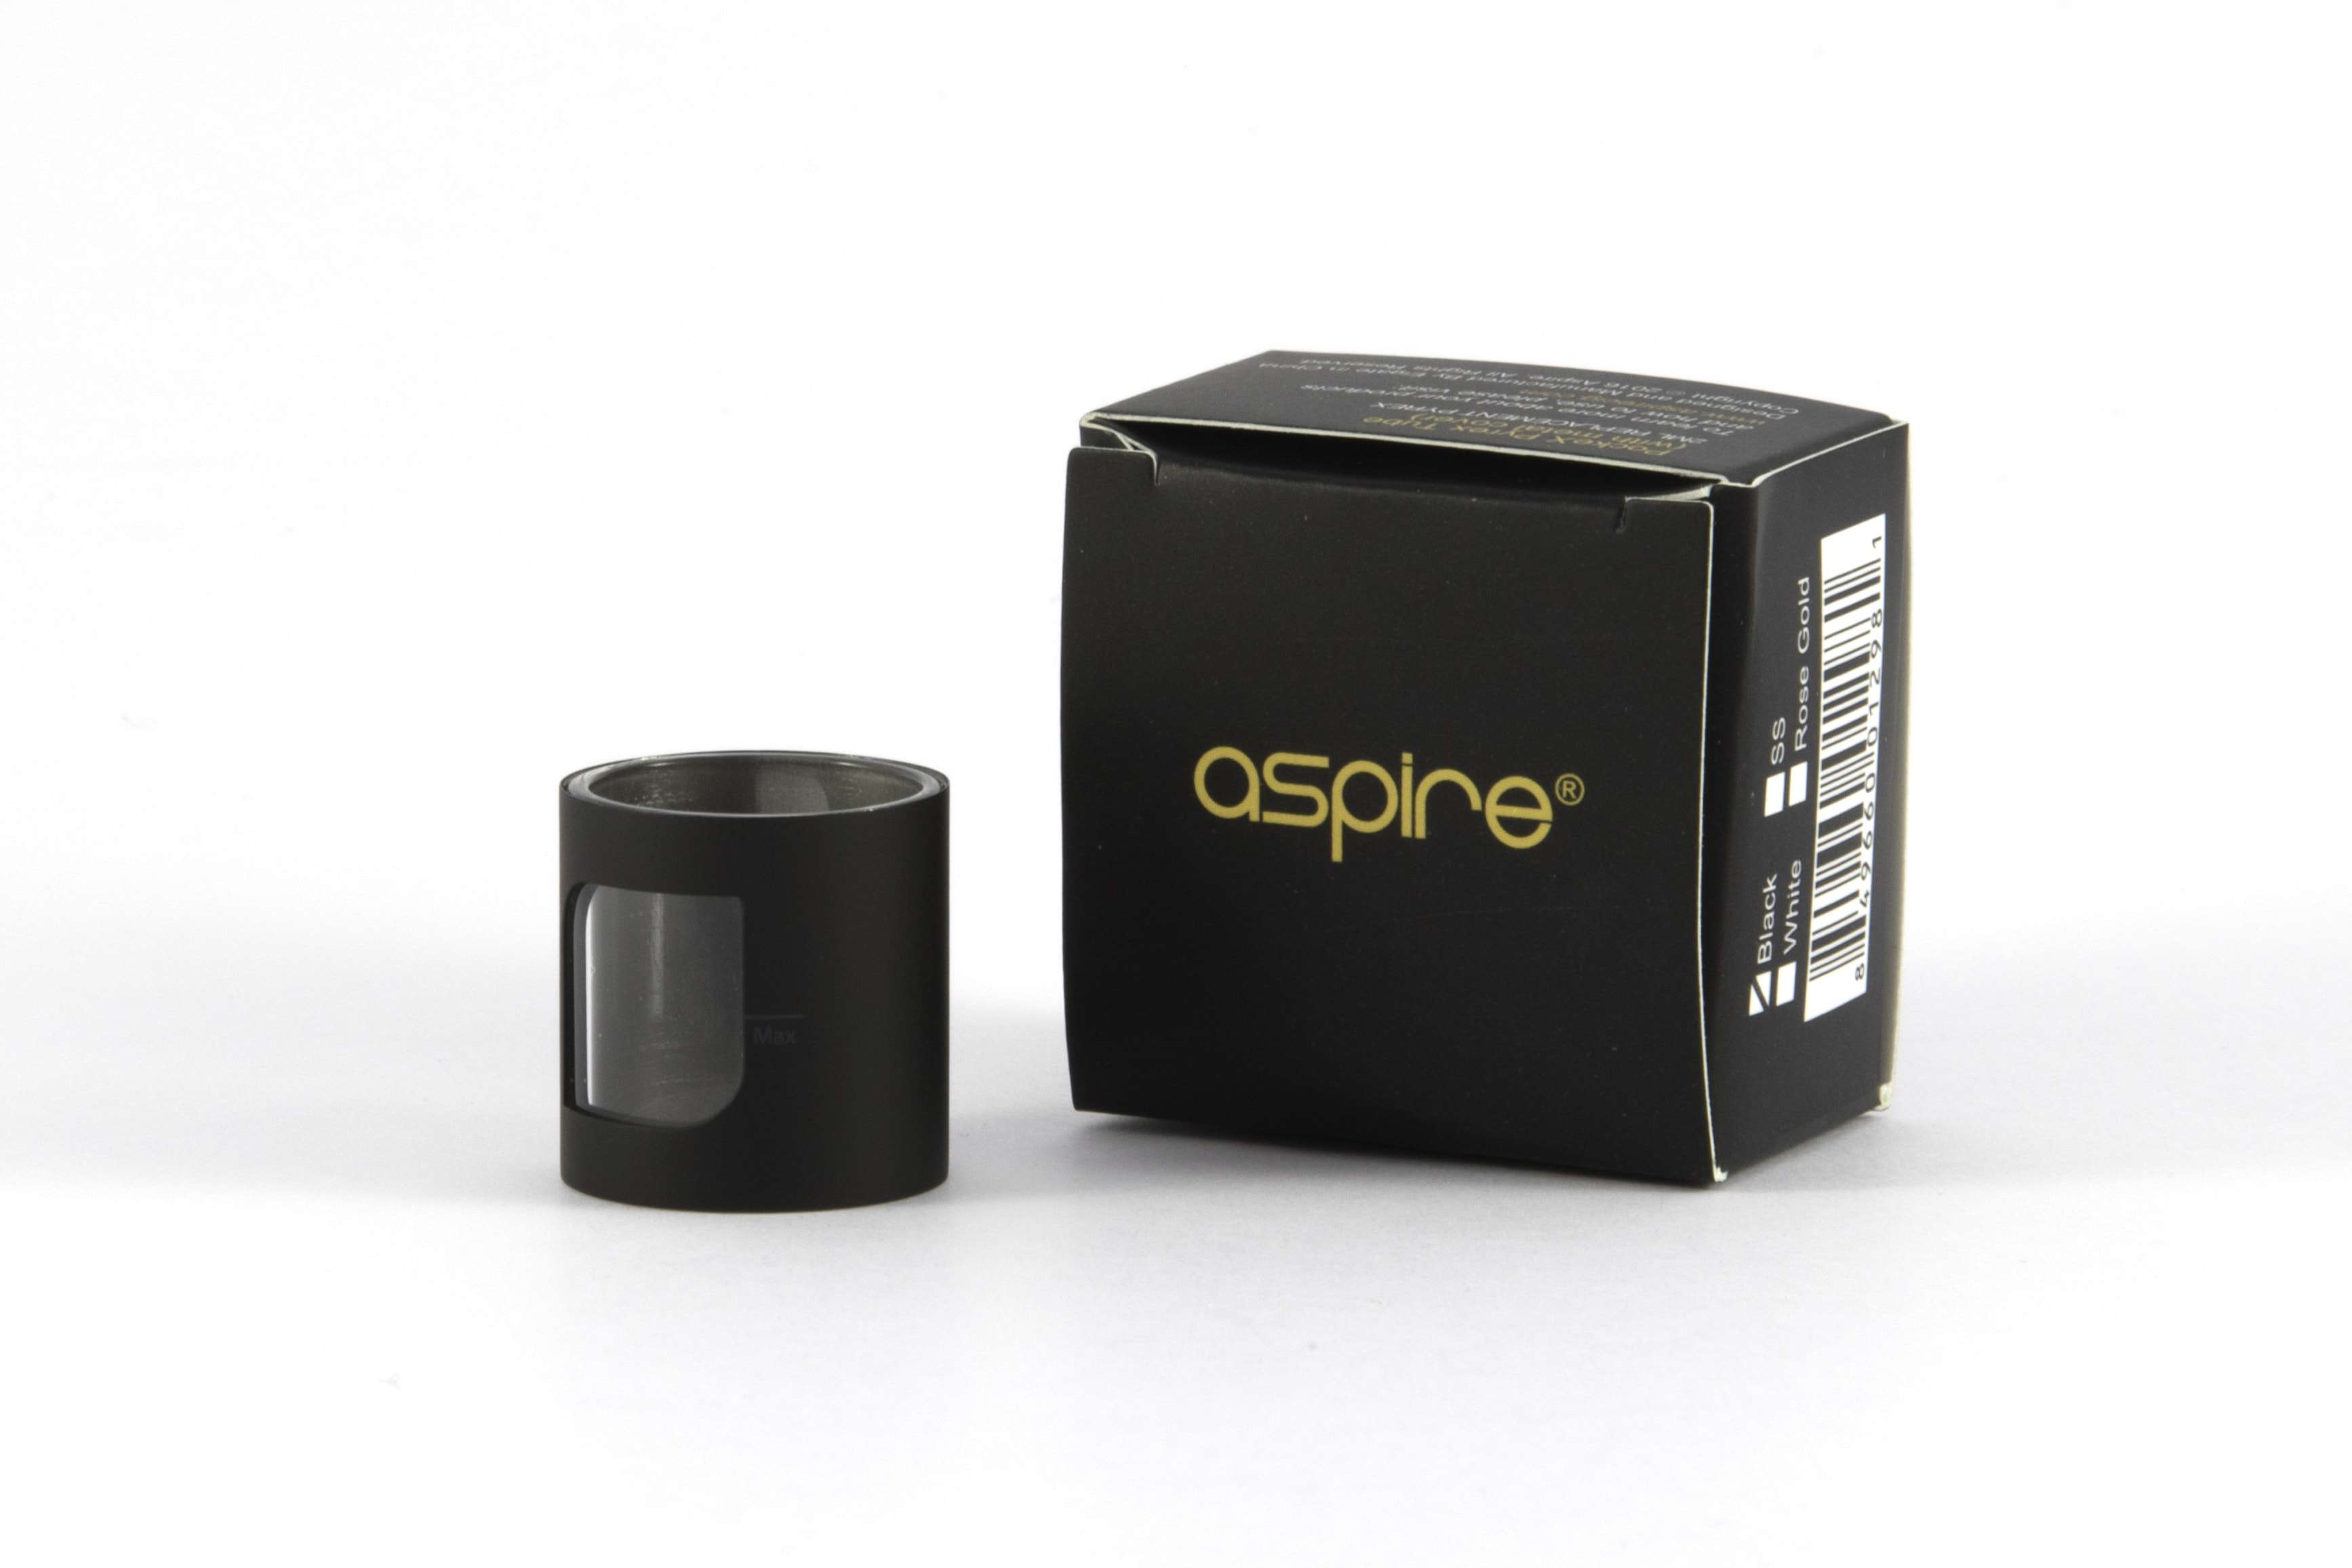 Aspire-Pockex-Pyrex-tube-with-mat-black-metal-cover